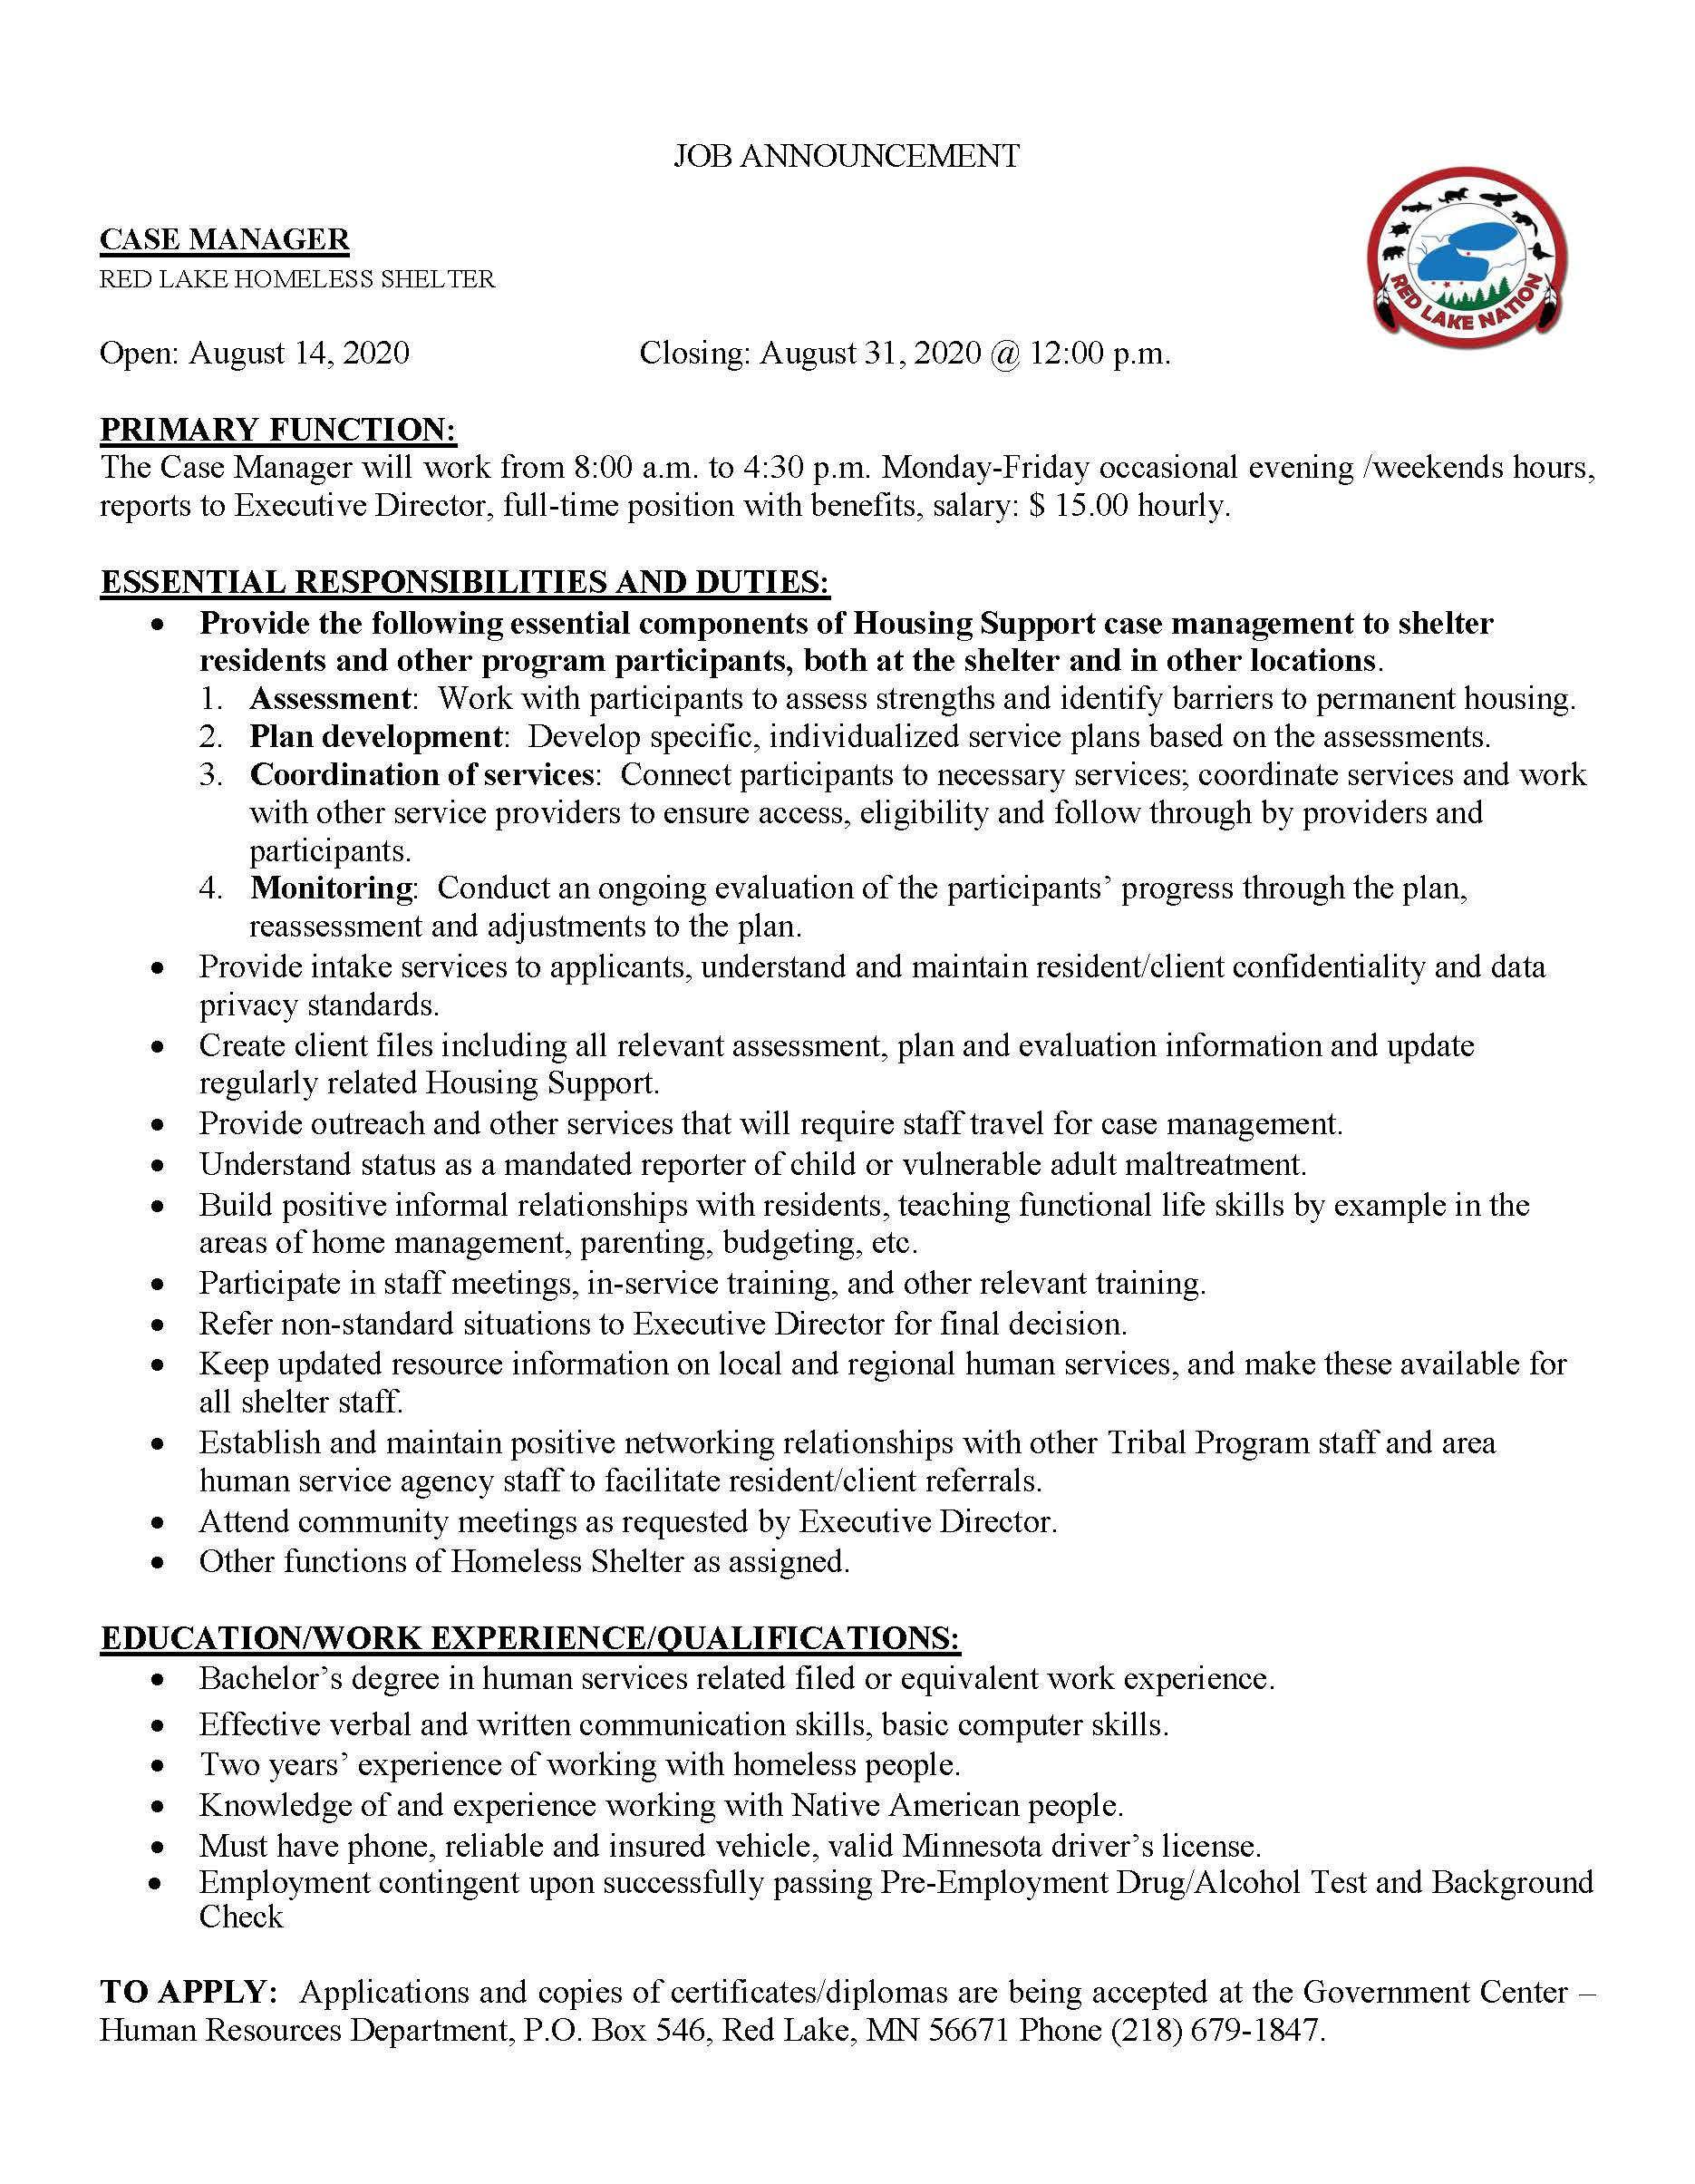 Case Manager-FT Housing Support-RL Homeless Shelter-job posting 8-14-2020